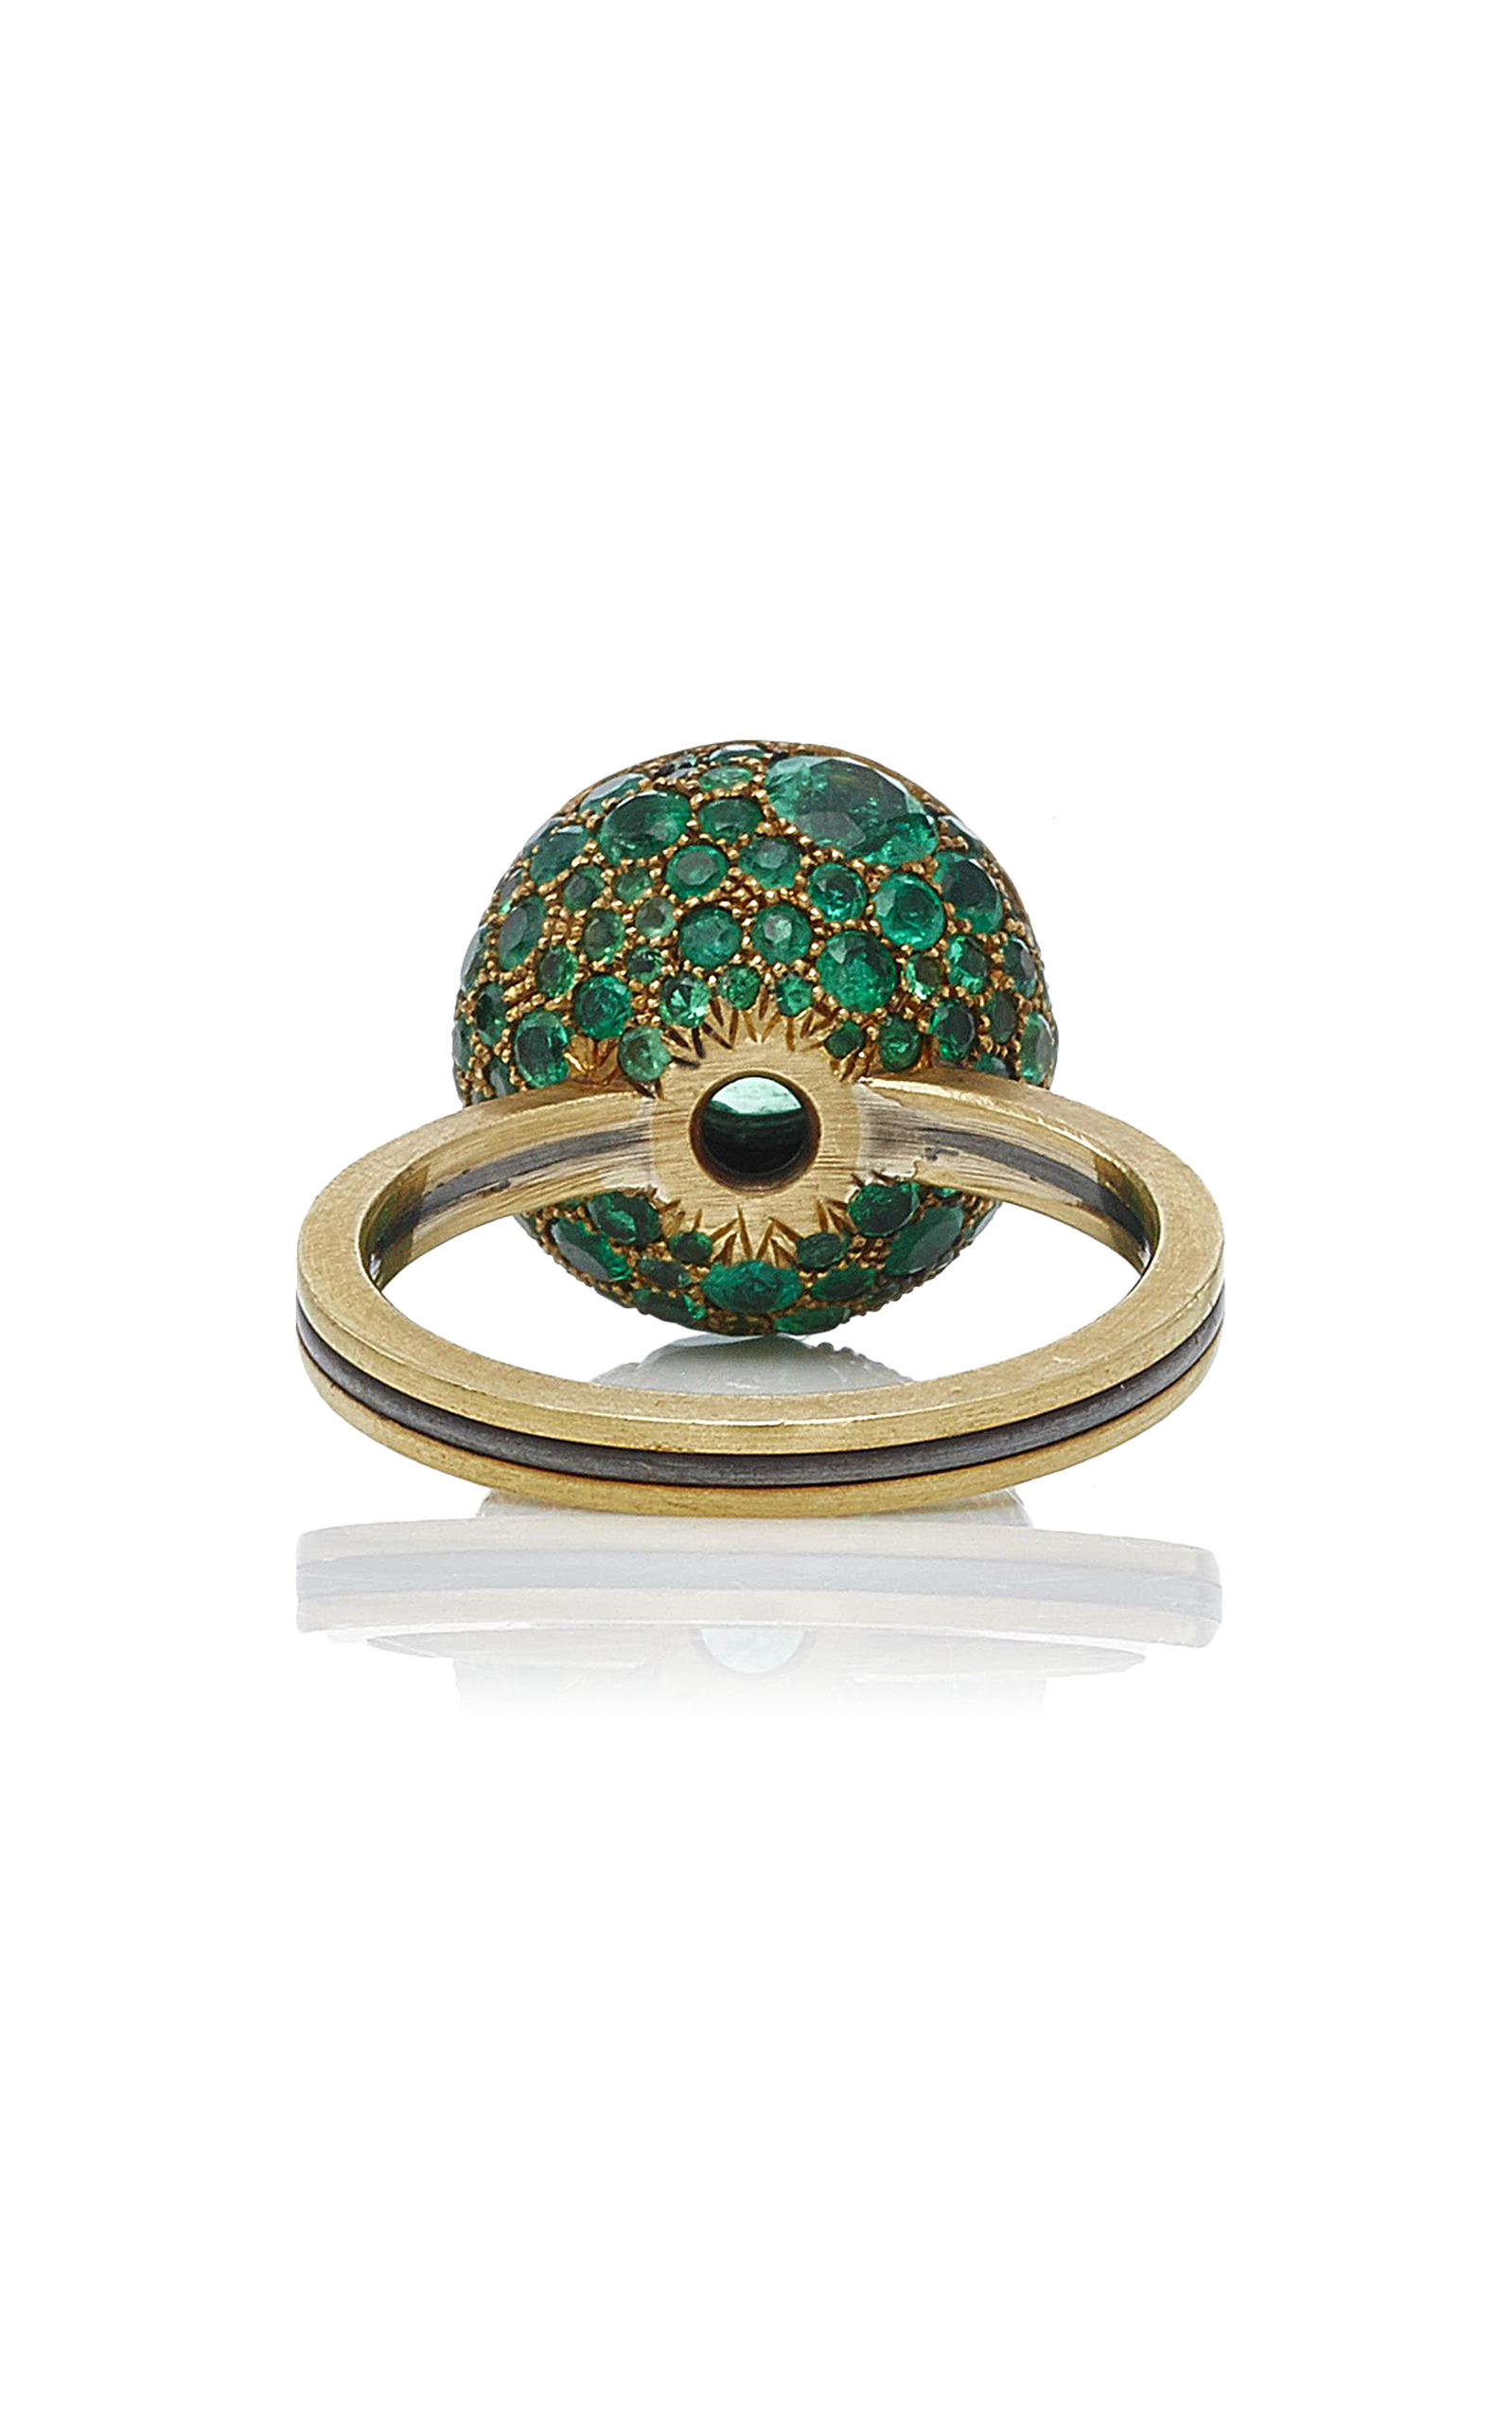 moda kind rings of emerald by columbian gold ring emeral judy a one geib loading large operandi